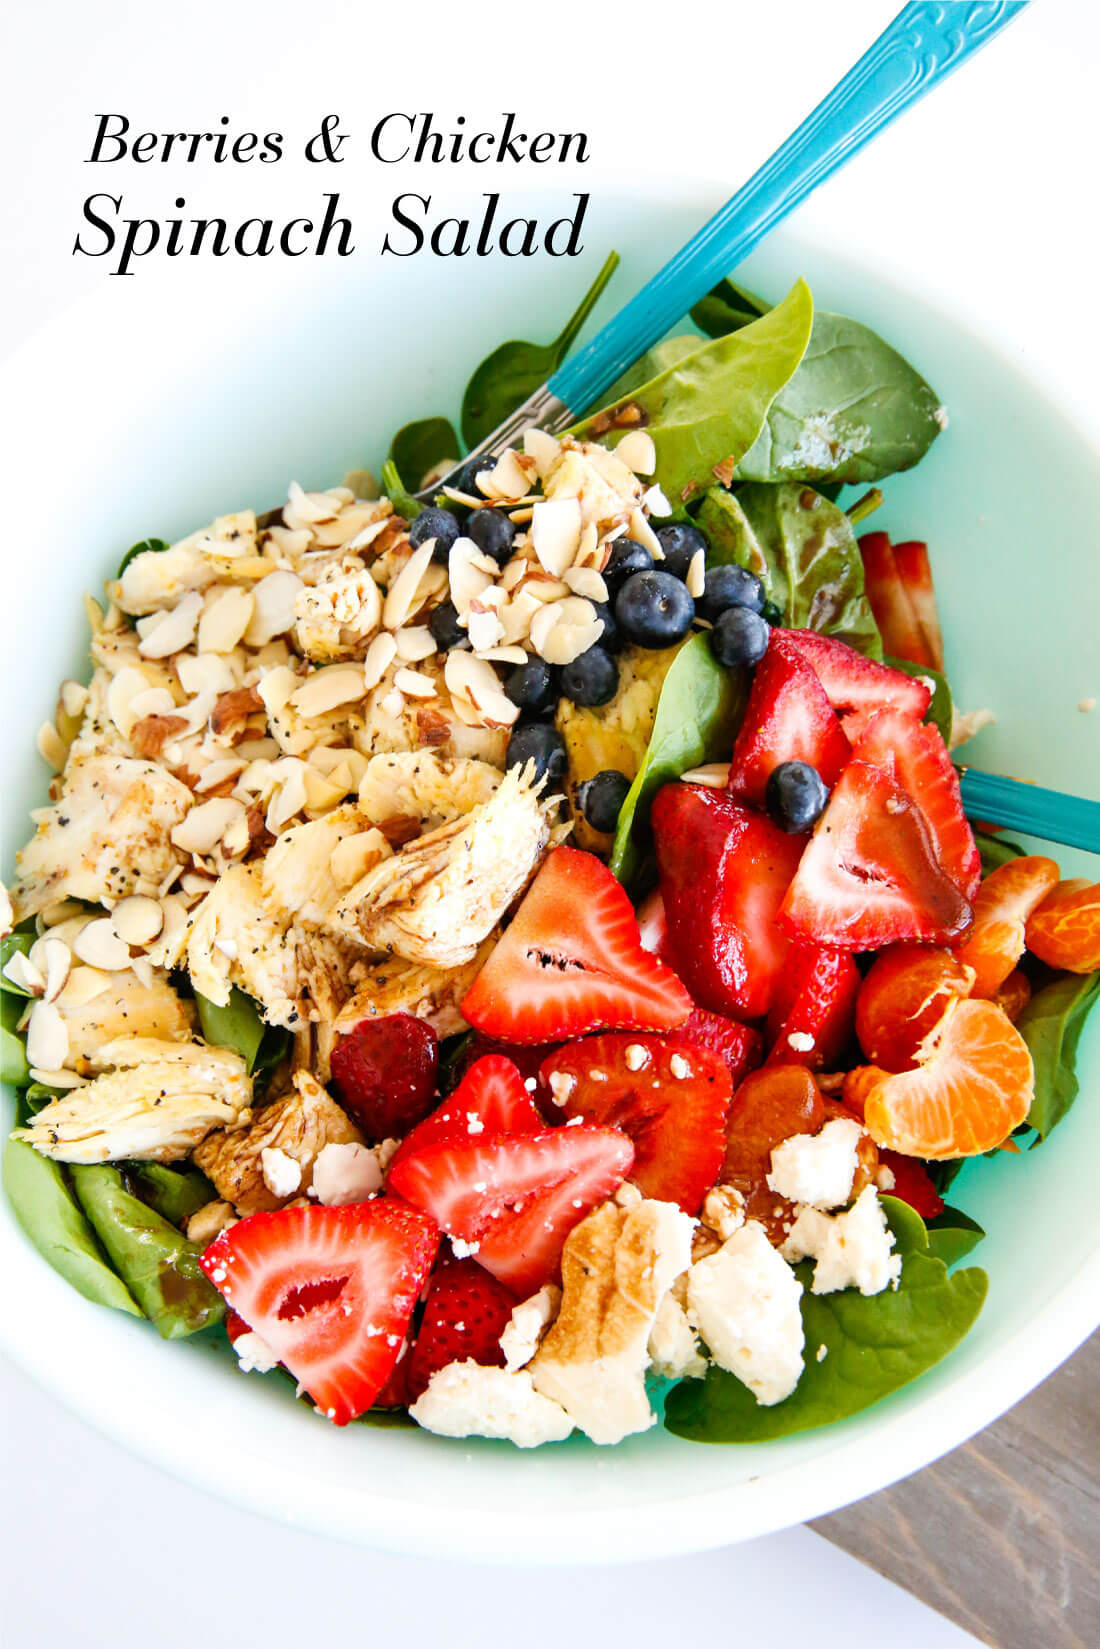 Berries and Chicken Spinach Salad - a tasty, healthy salad that is super easy to make. www.thirtyhandmadedays.com